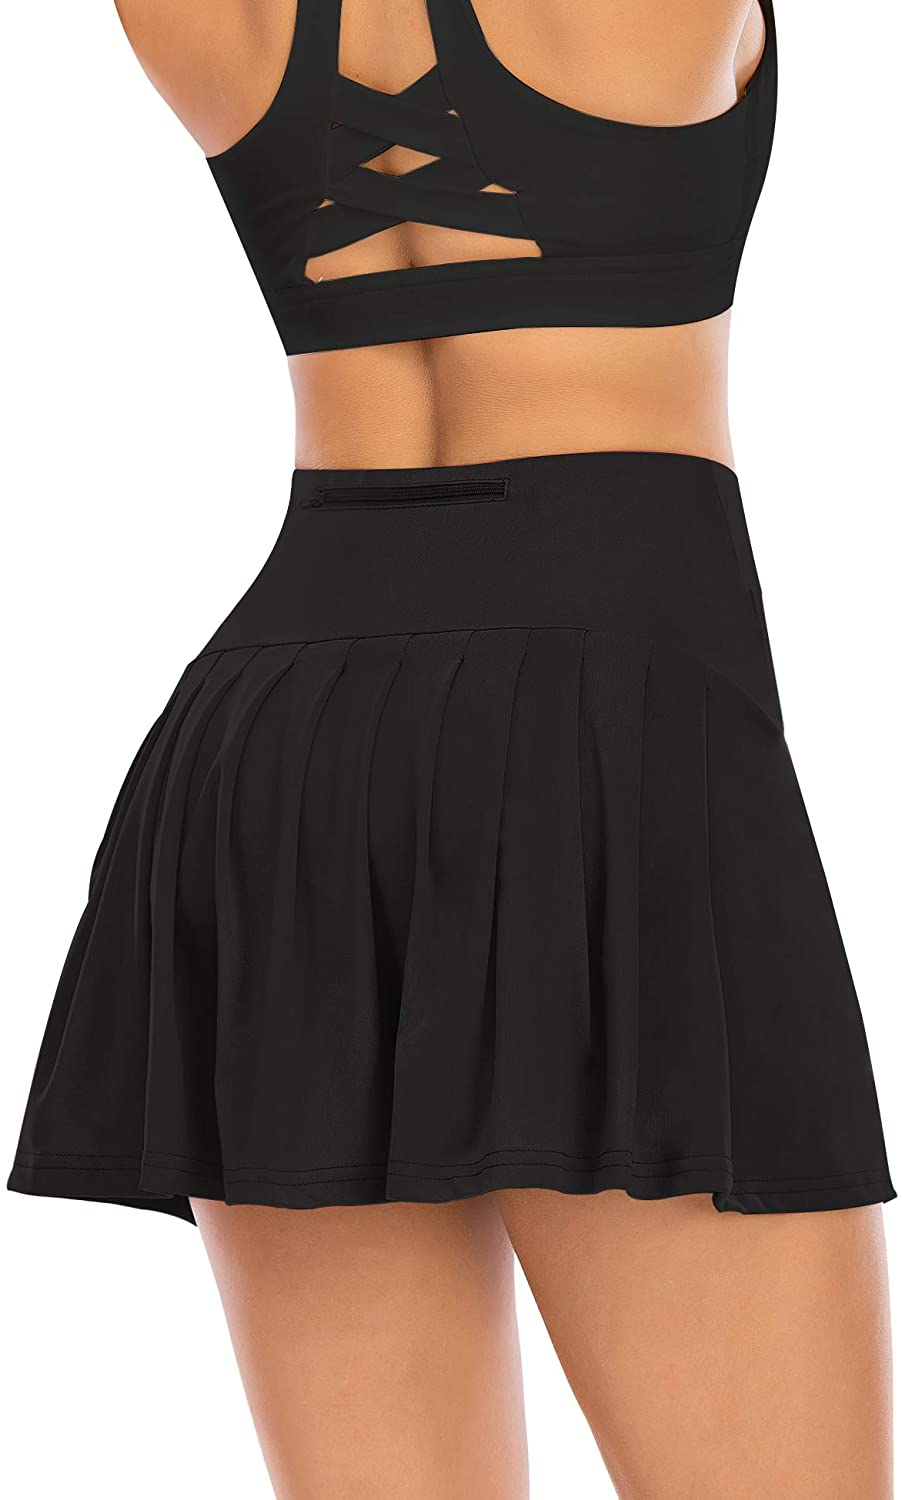 Pleated Large special price Tennis Skirts for Women Pockets Shorts Gol Baltimore Mall Athletic with